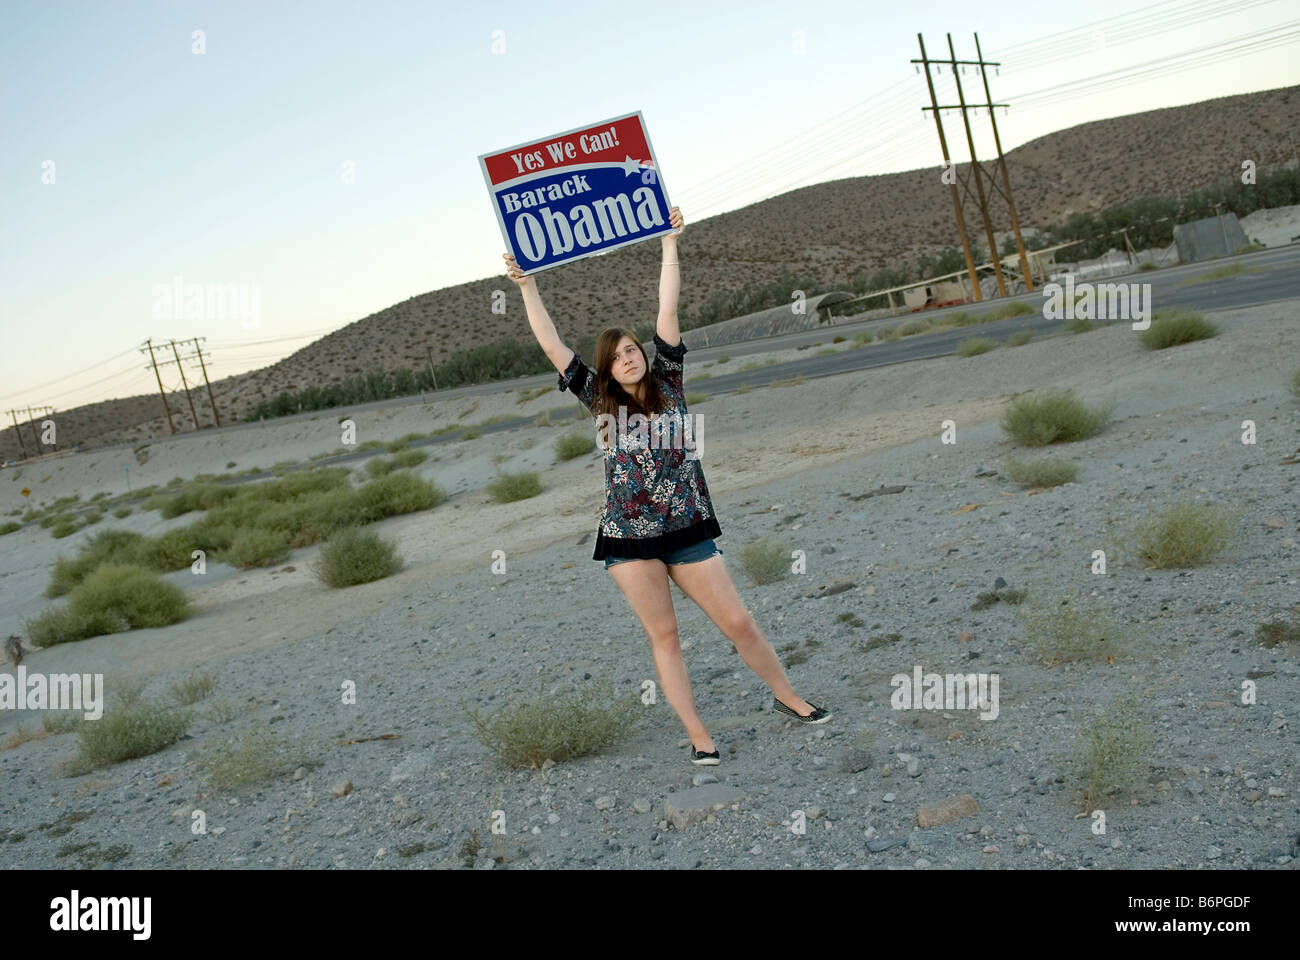 Barak Obama supporter holding up a 'Yes we can' election banner. - Stock Image